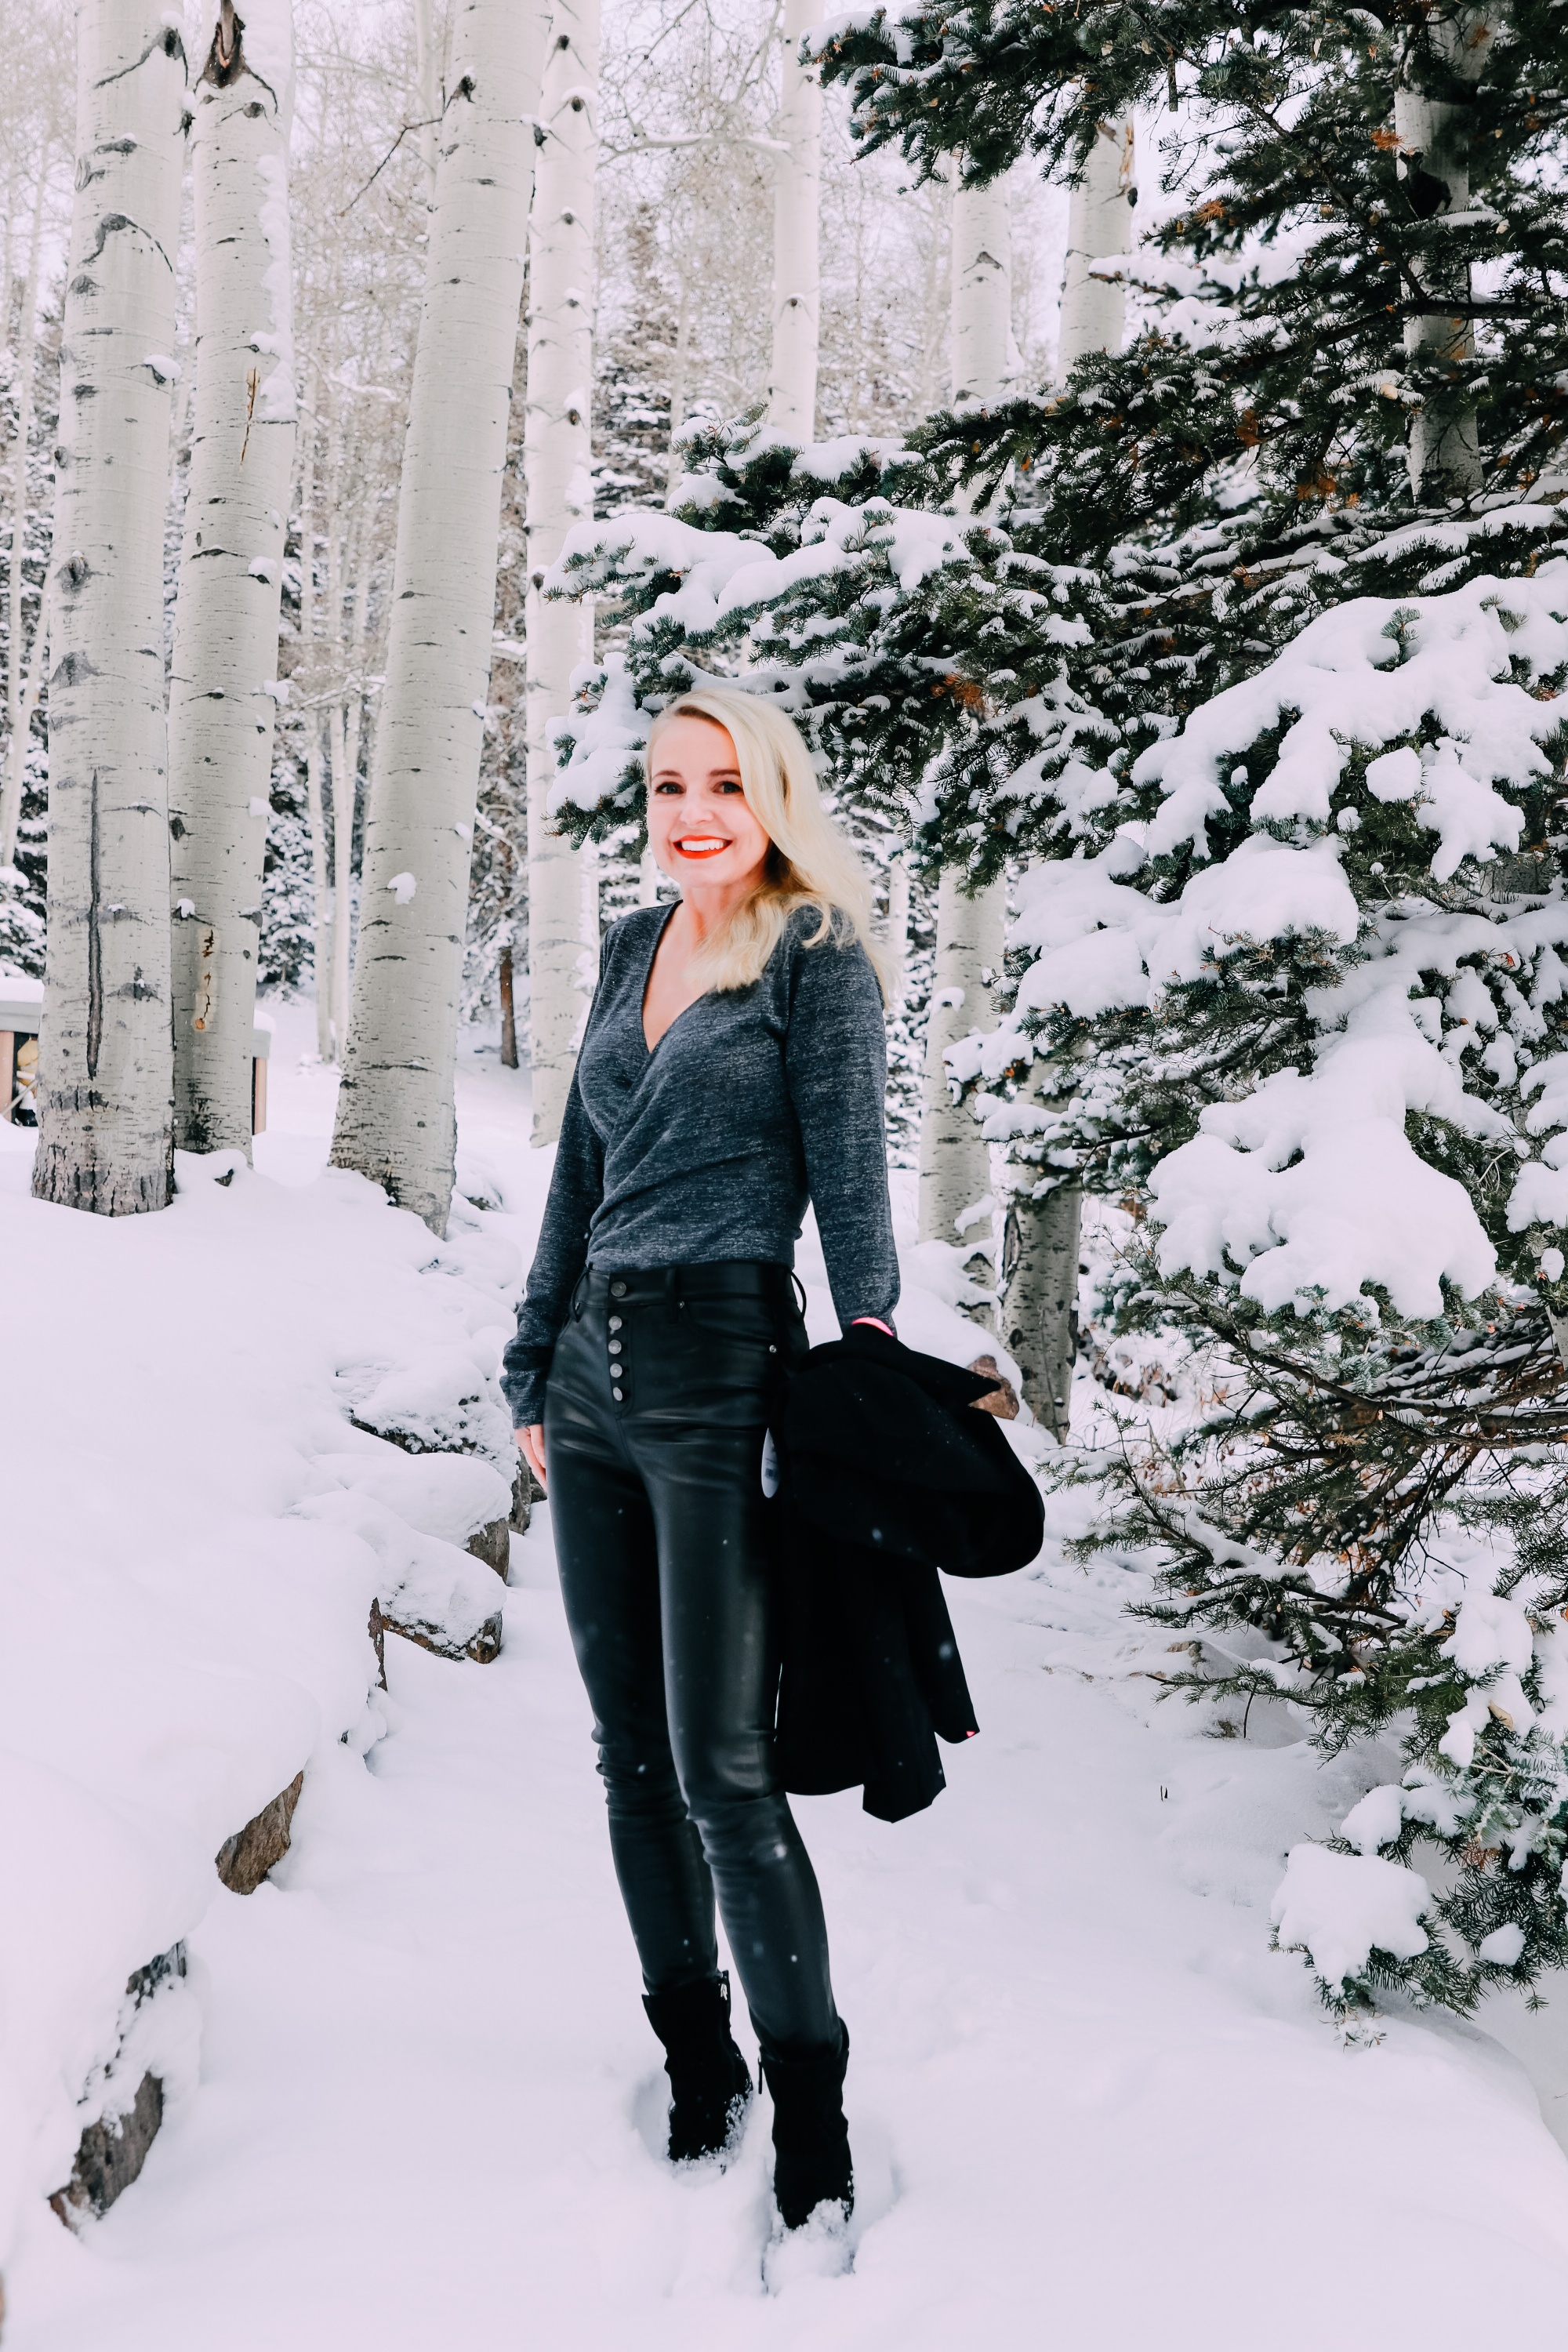 Holiday Party Outfits, Erin Busbee of Busbee Style wearing a black double breasted crepe blazer by Scoop over a metallic wrap style bodysuit but Sofia Vergara with black faux leather high rise skinny jeans by Scoop and black stiletto booties by Scoop in the snow in Telluride, Colorado